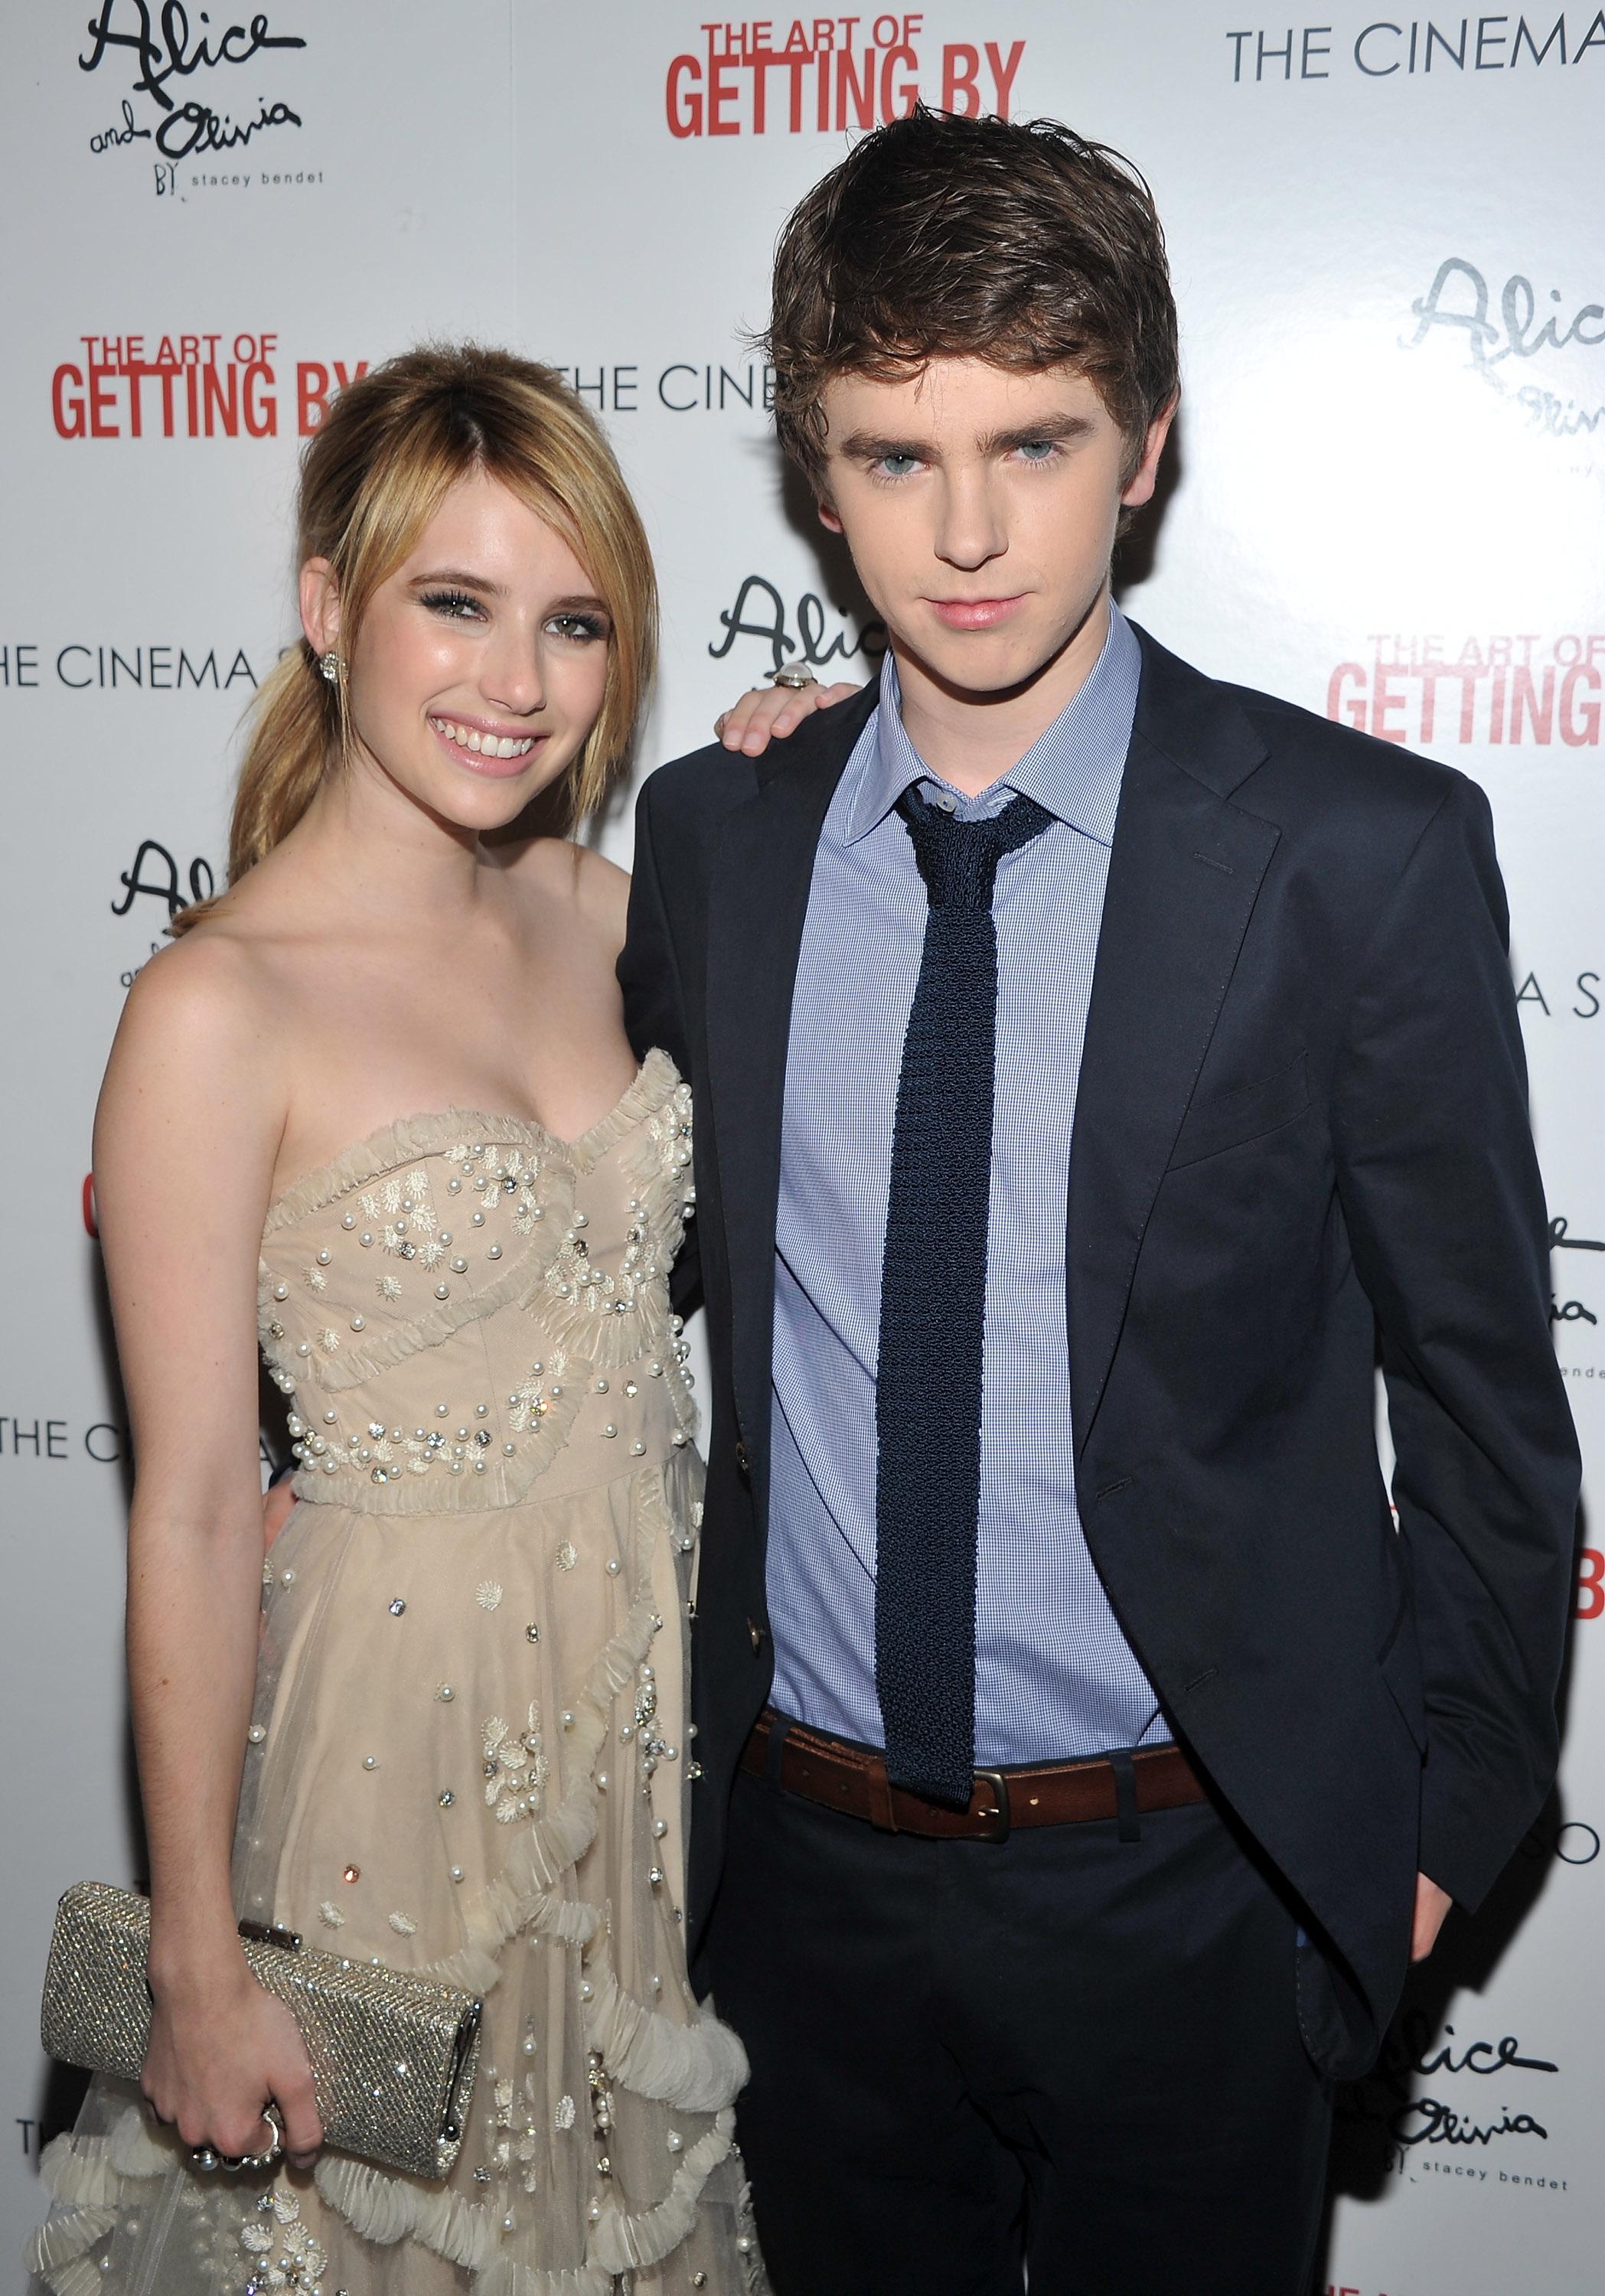 highmore singles Played by freddie highmore, who is doomed to remind many of us of his  but i  was disappointed by the lack of imagination in the single-cam.